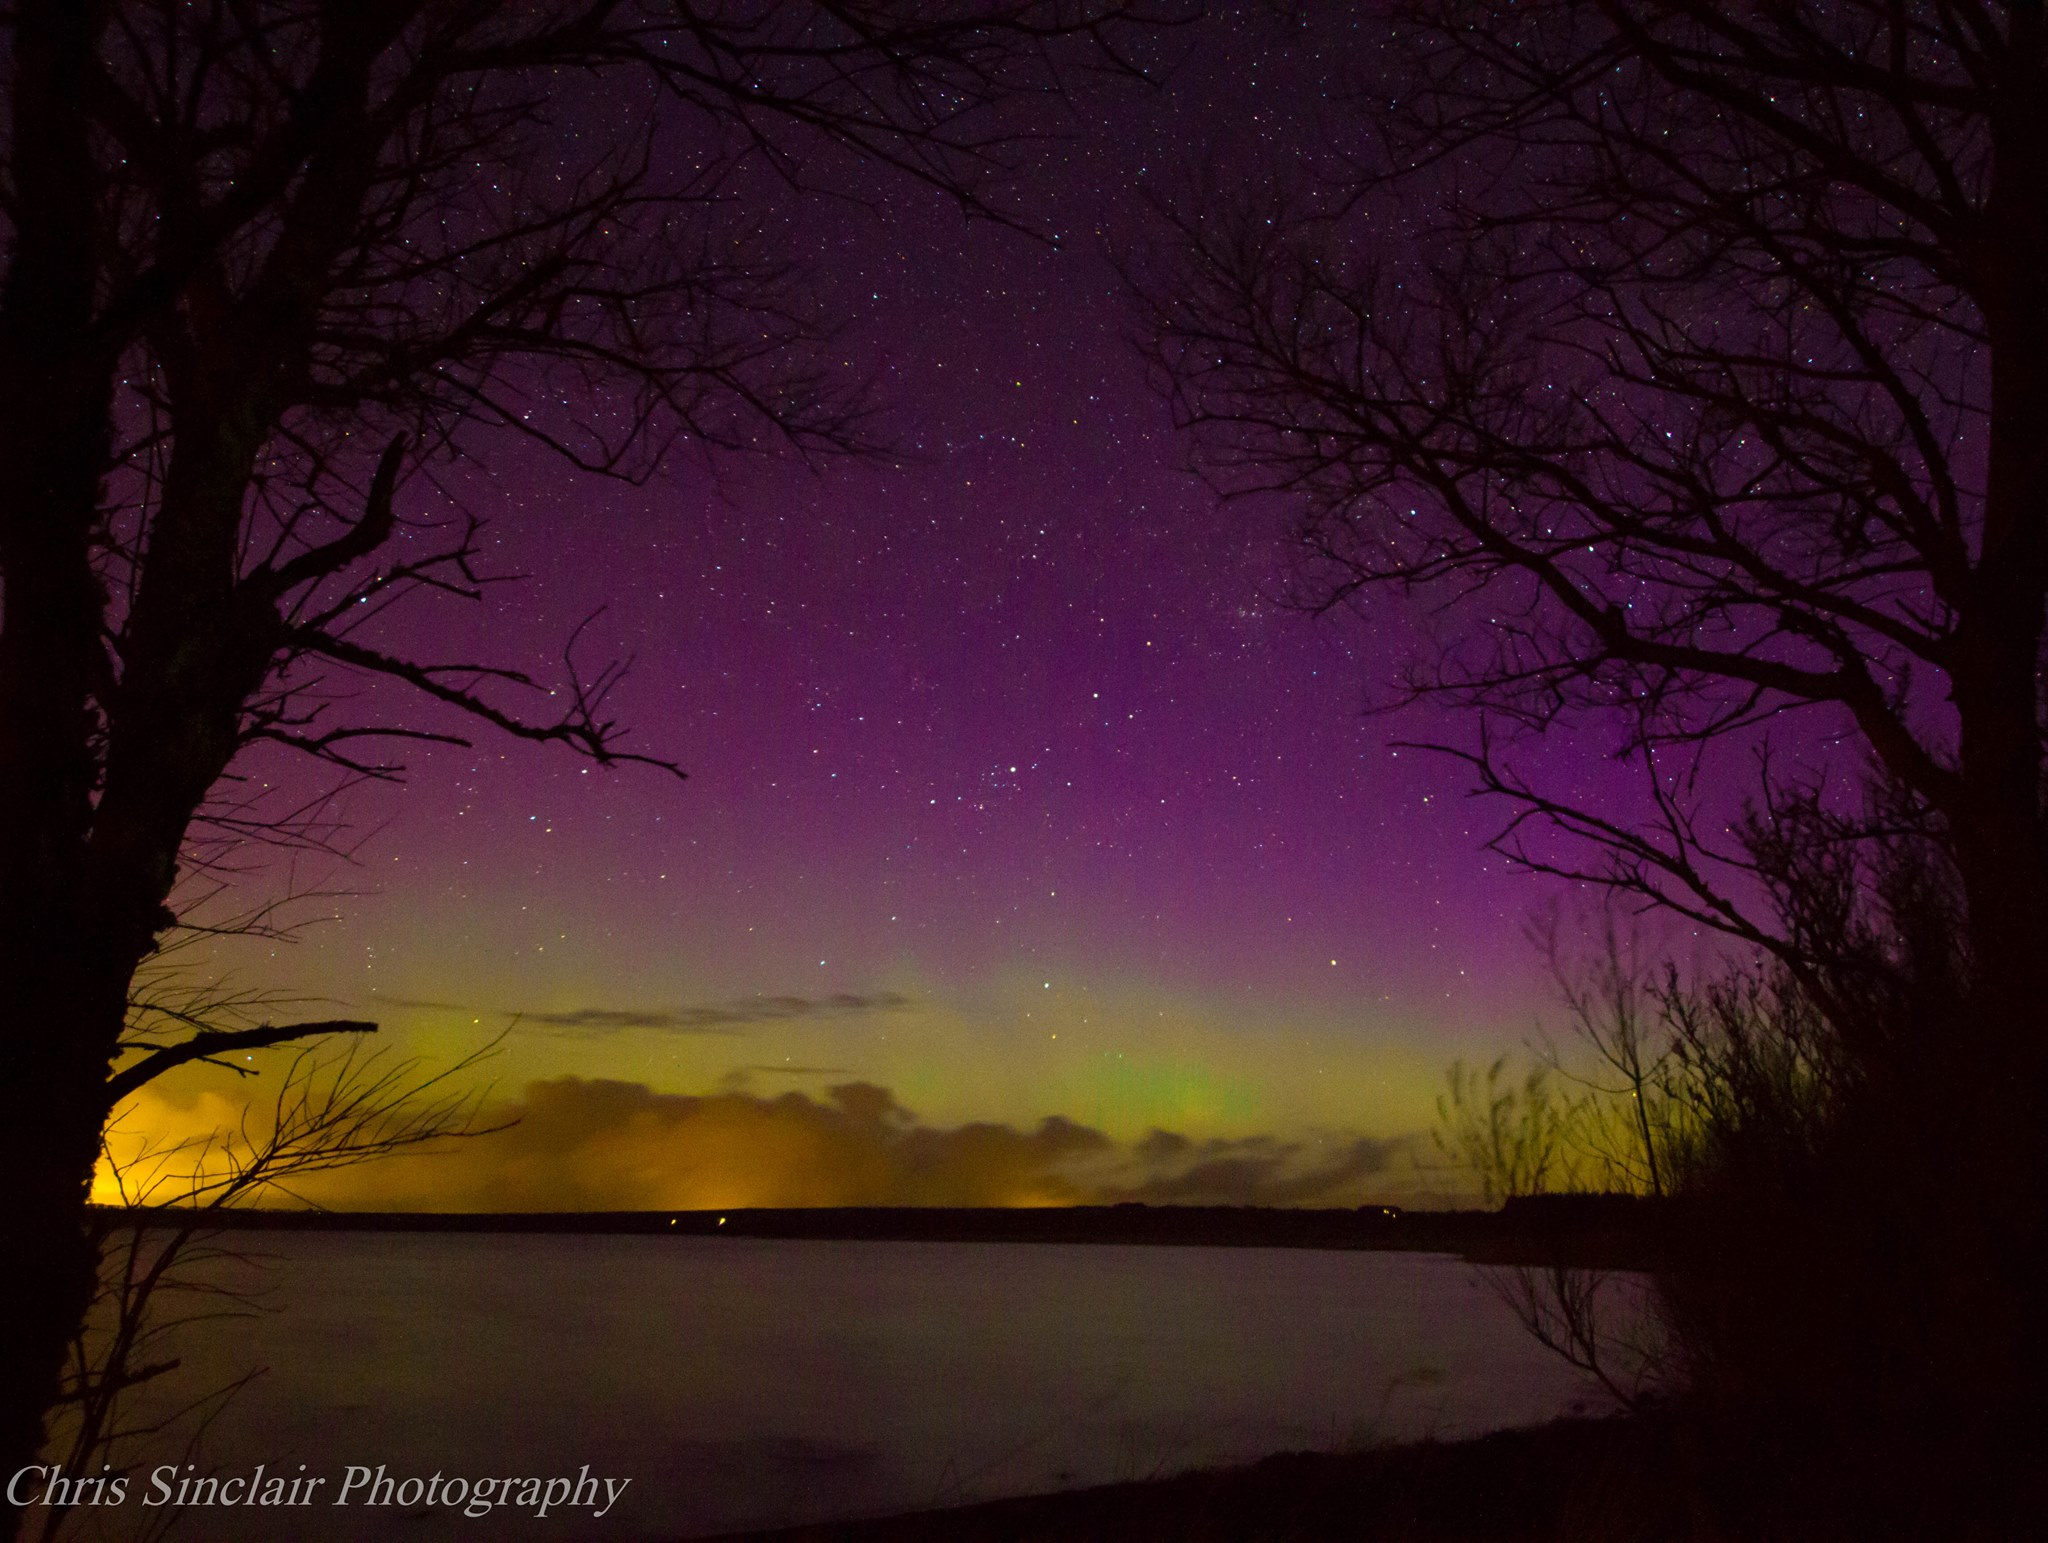 Spectacular shows of the Northern Lights in the highlands